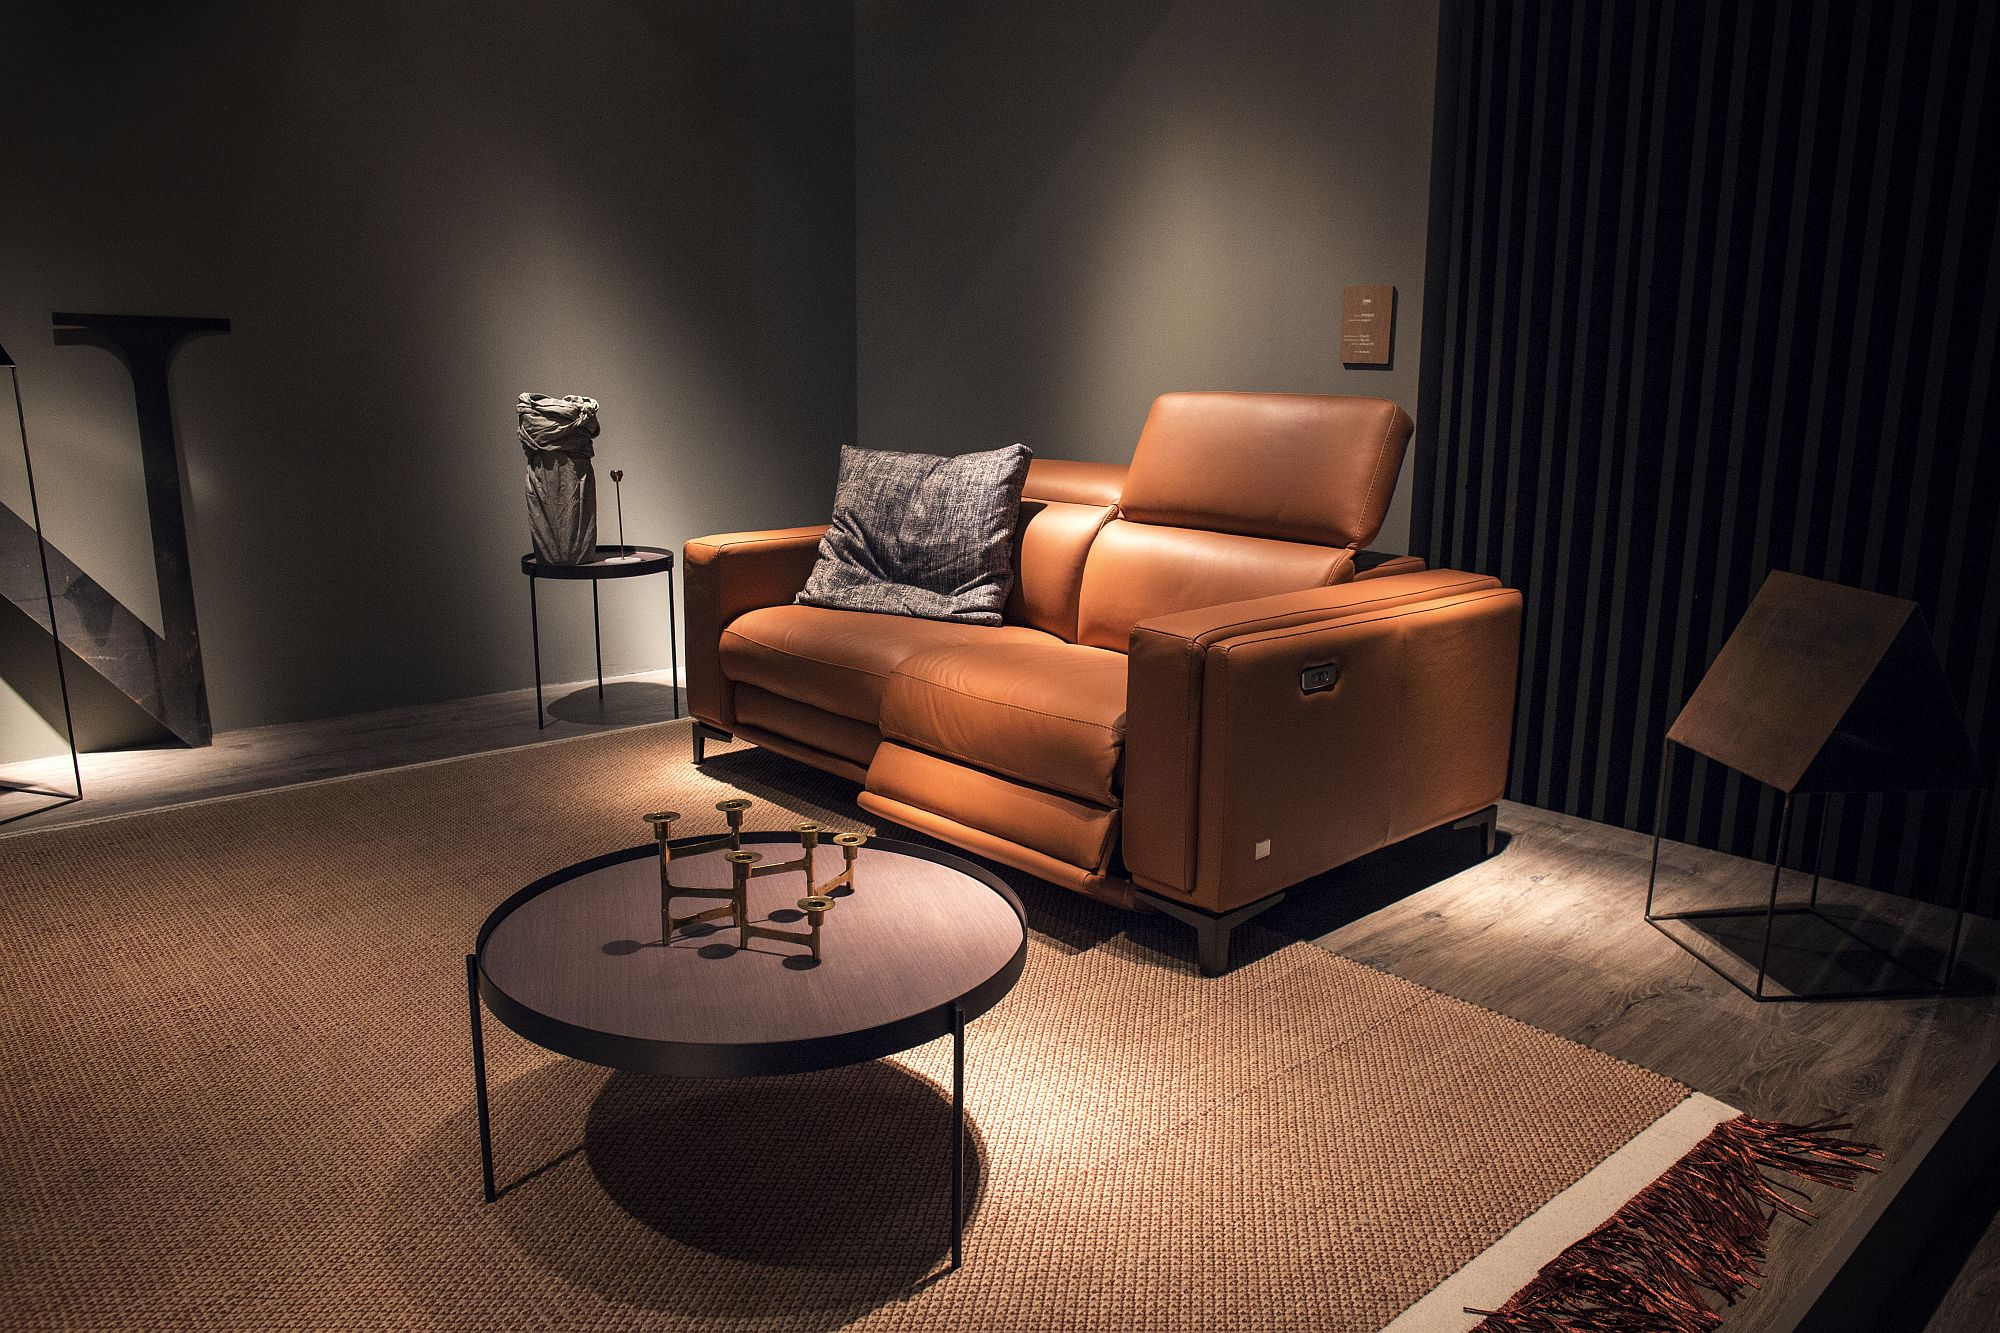 Ultra-comfy-sofa-from-Gruppo-Doimo-with-a-hint-of-orange-zest